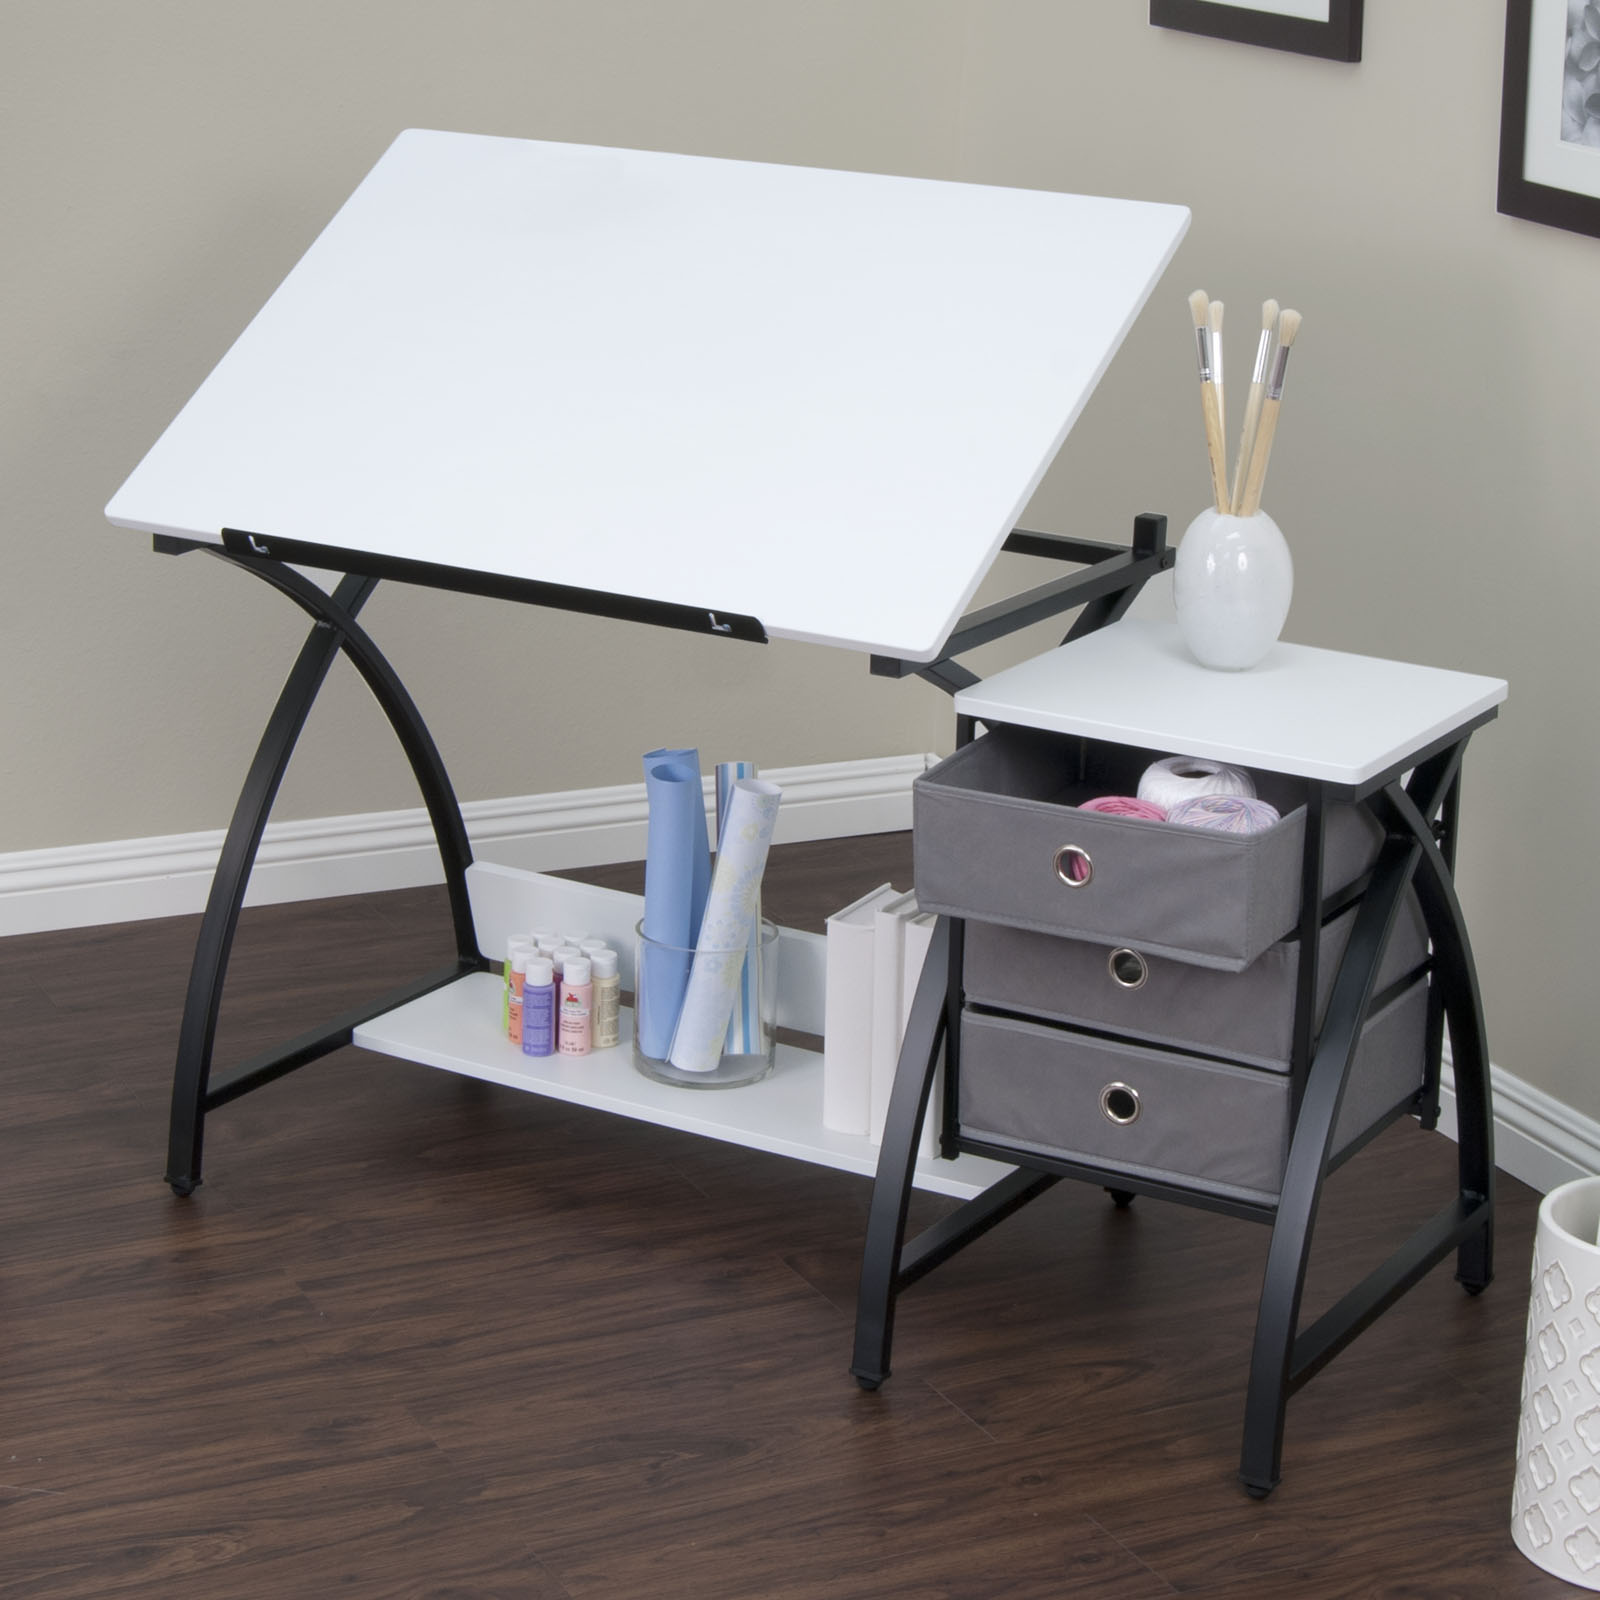 2 Piece Comet Craft Center Adjustable Top Table With